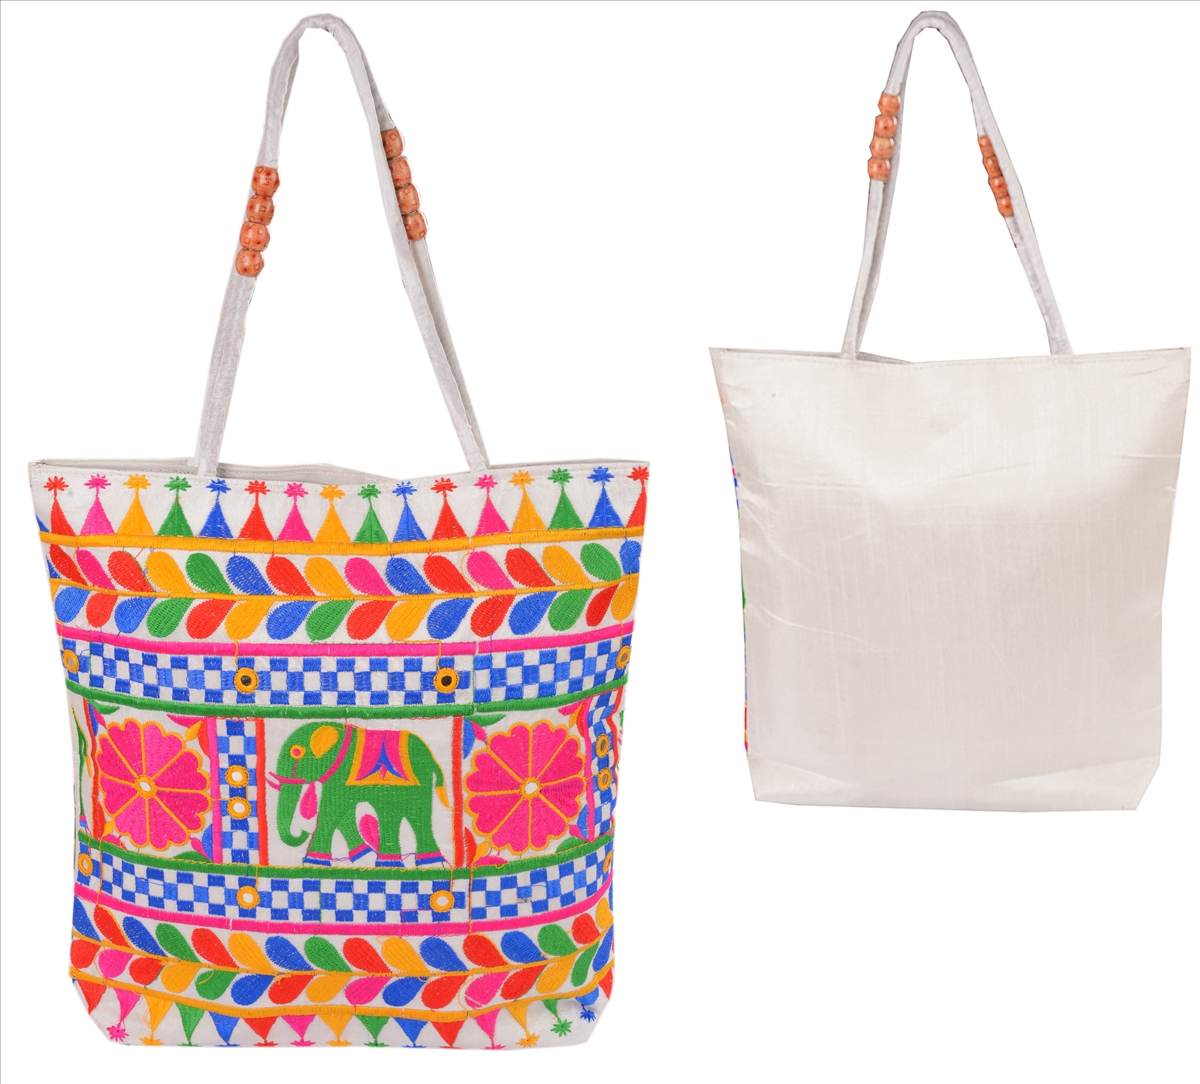 Perfect kutch embroidery bags online makaroka